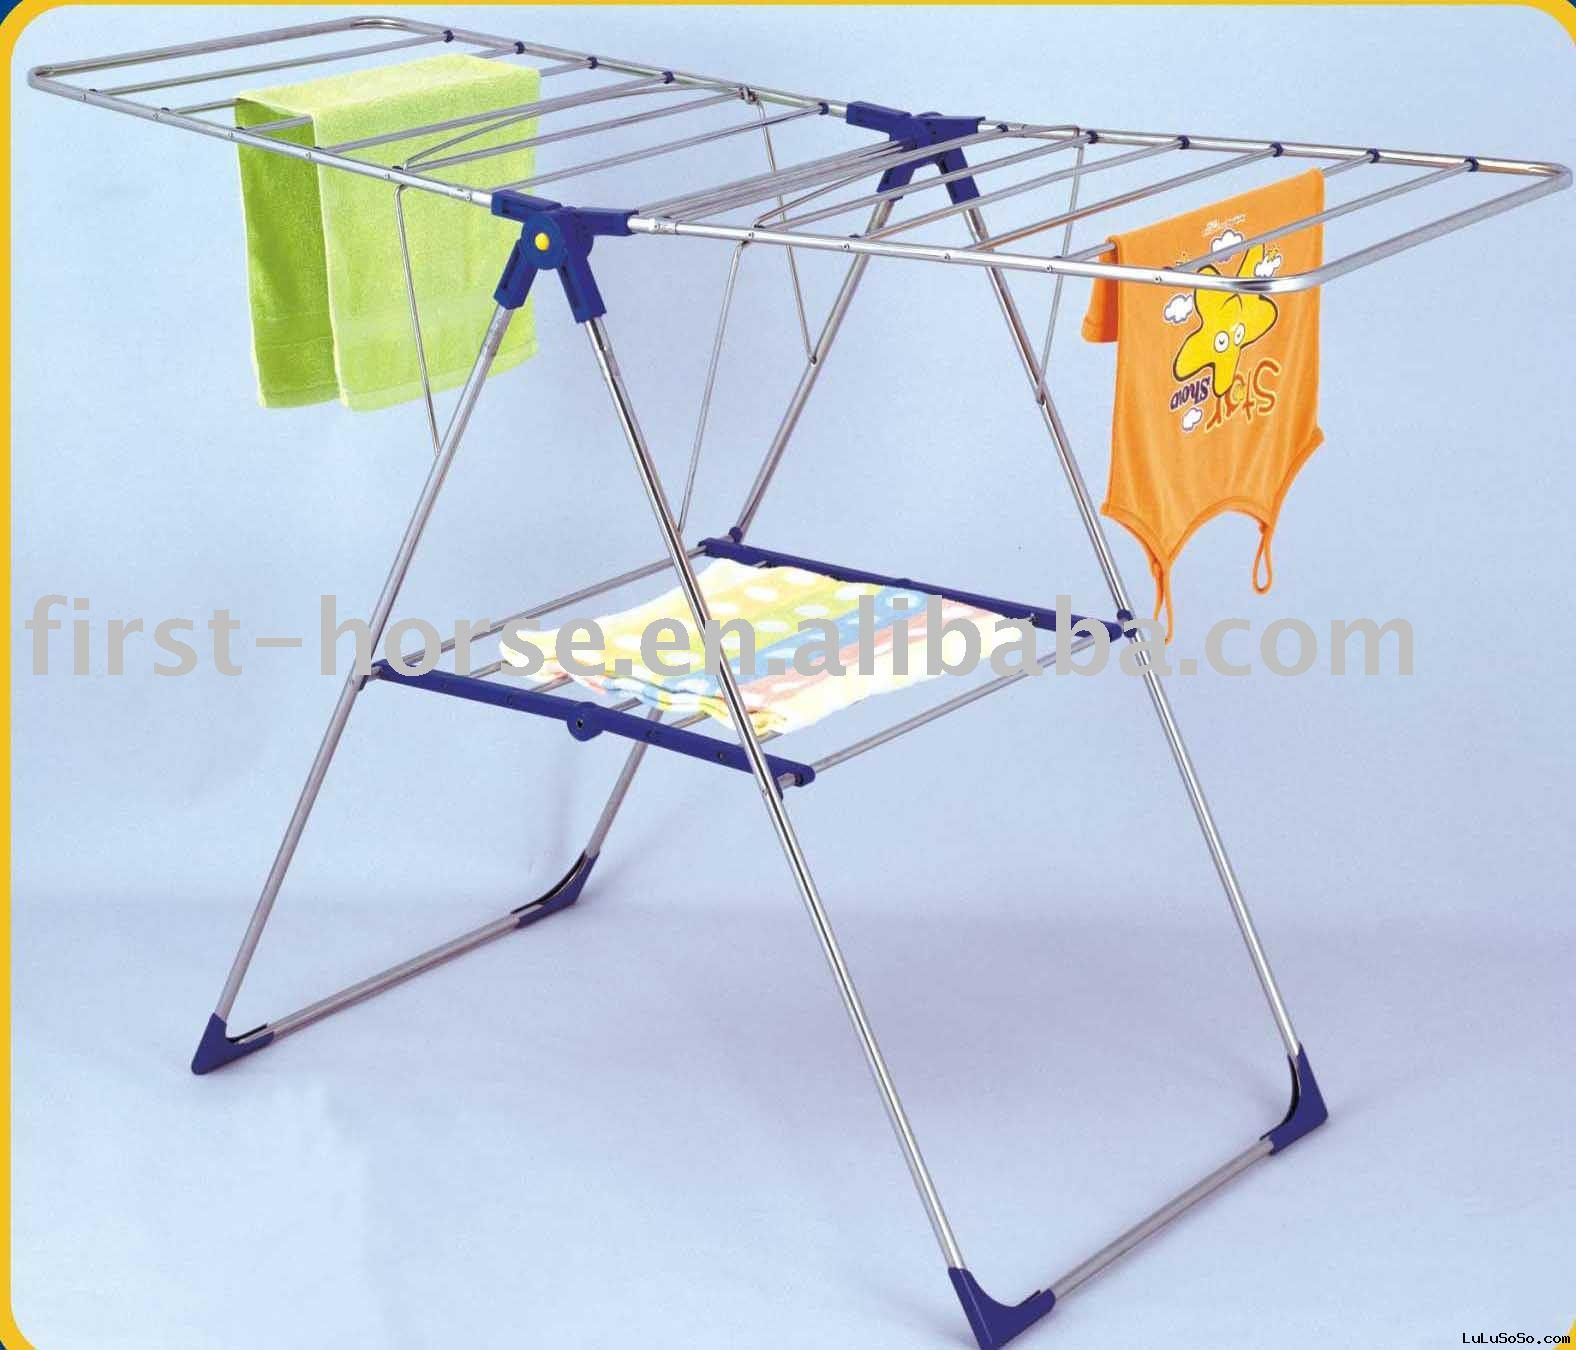 Luxury laundry rack,clothes dryer rack,clothes airer